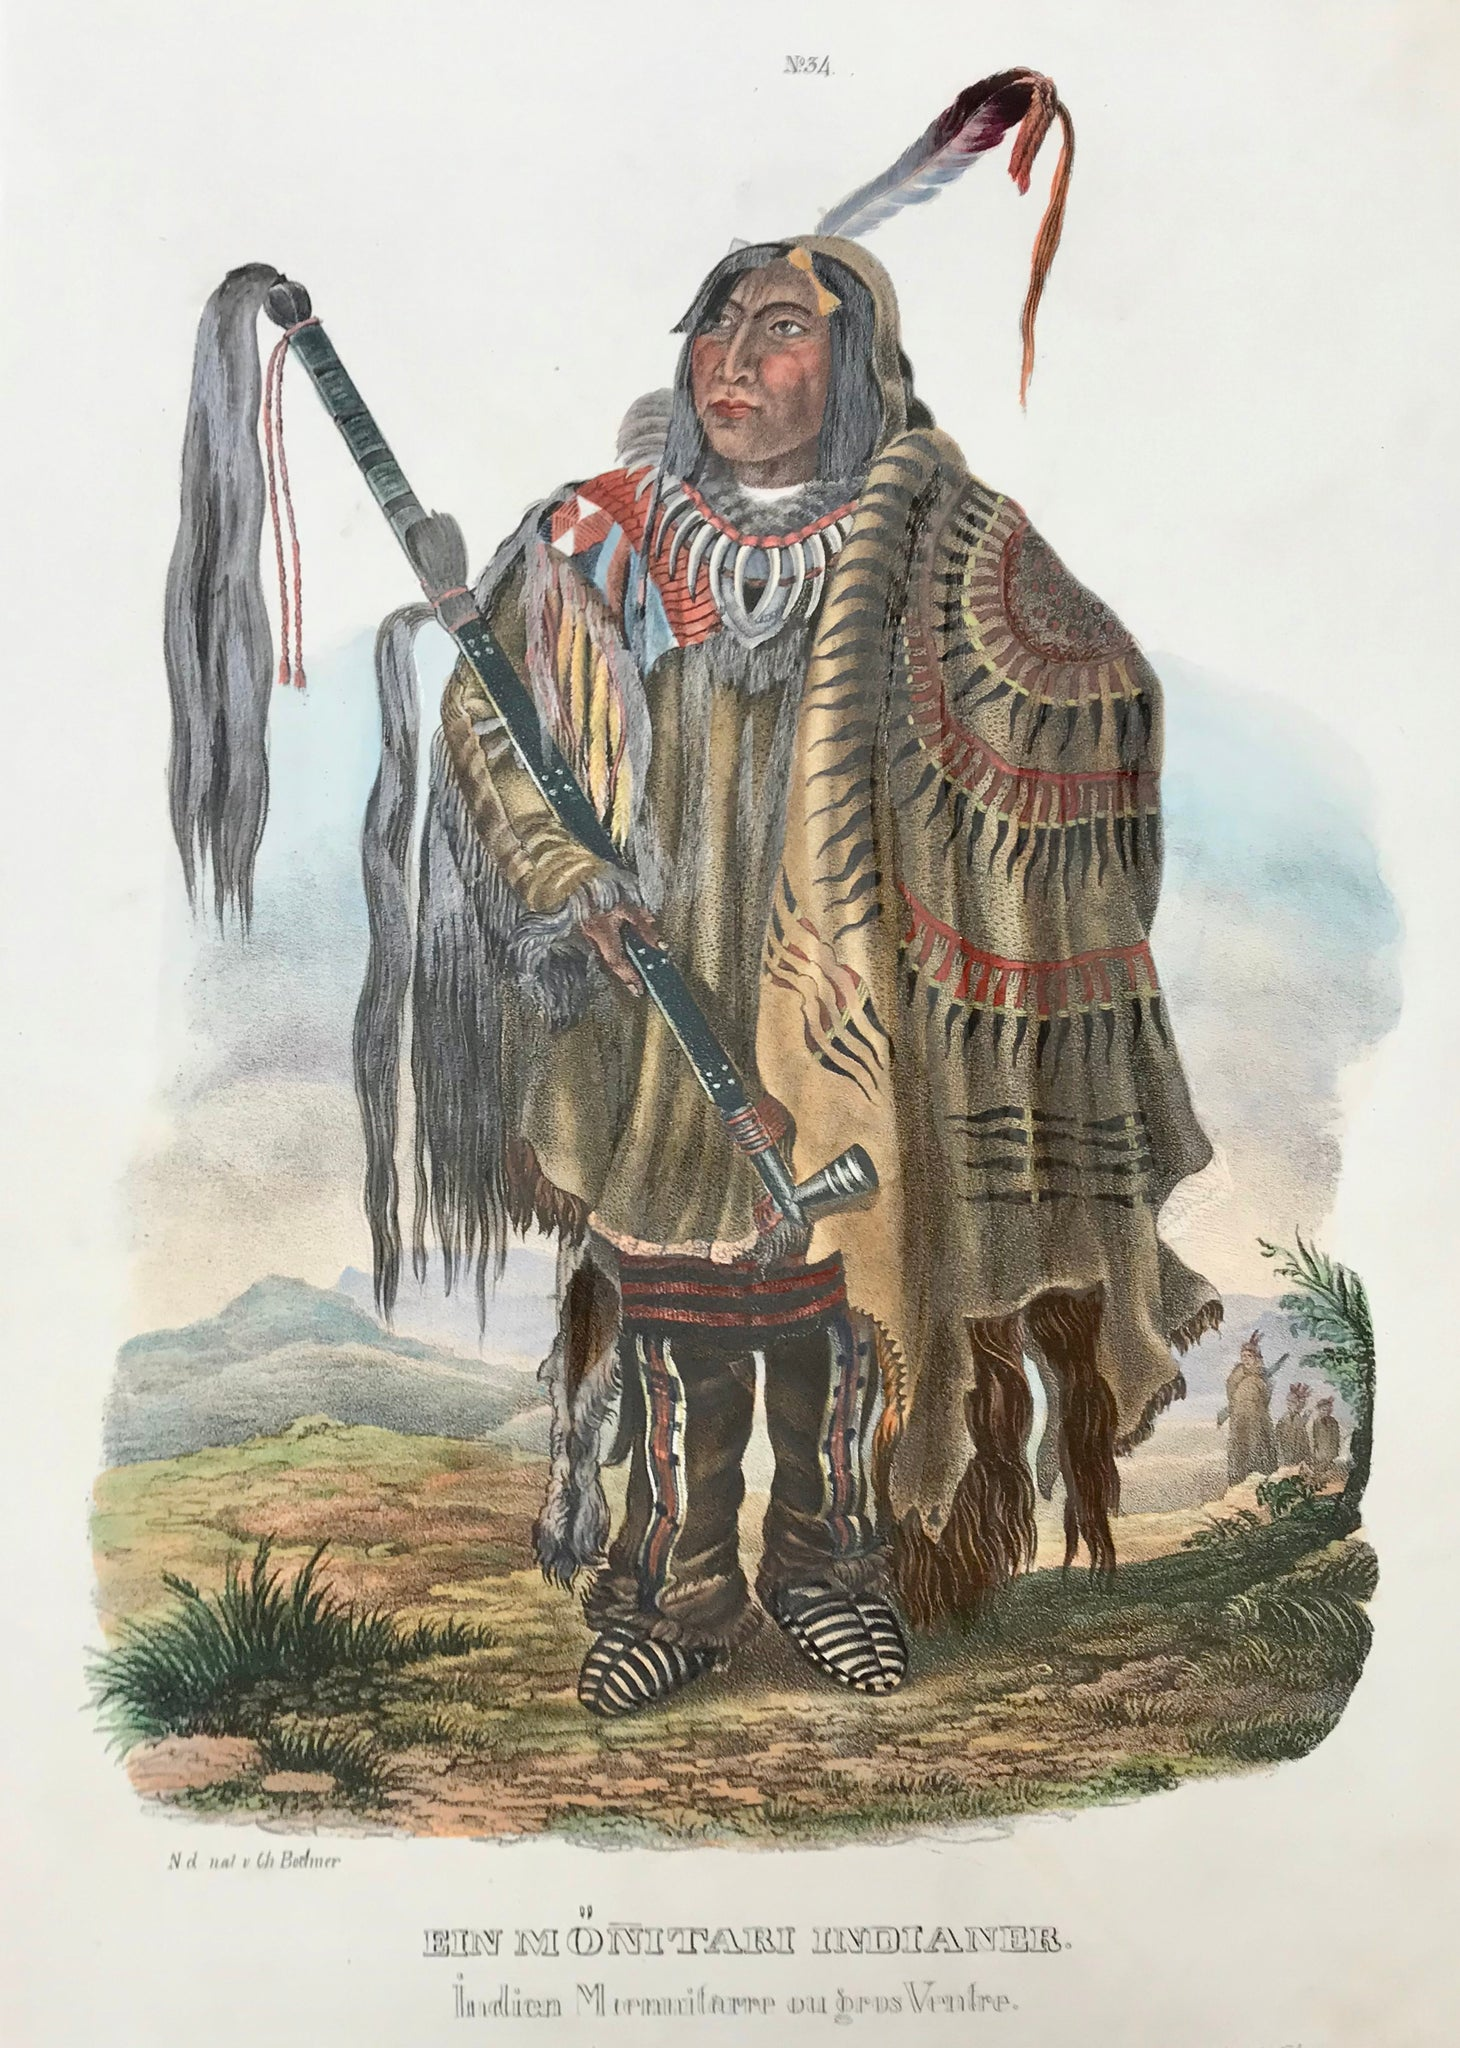 """Ein Moenitari Indianer - Indien Moenitarre ou gros Ventre""  The lithographs of plains Indians and their culture were printed in  ""Naturgeschichte und Abbildungen des Menschen und der verschiedenen Rassen und Staemme nach den neuesten Entdeckungen und vorzueglichsten OriginalenÉ""  by Heinrich Rudolf Schinz (1777-1861).  These lithographs of Native Americans were done by  the lithographer J. Honegger  after  Johann Carl Bodmer (1809-1893), who had traveled in America together with  Prince Maximilian Alexande"